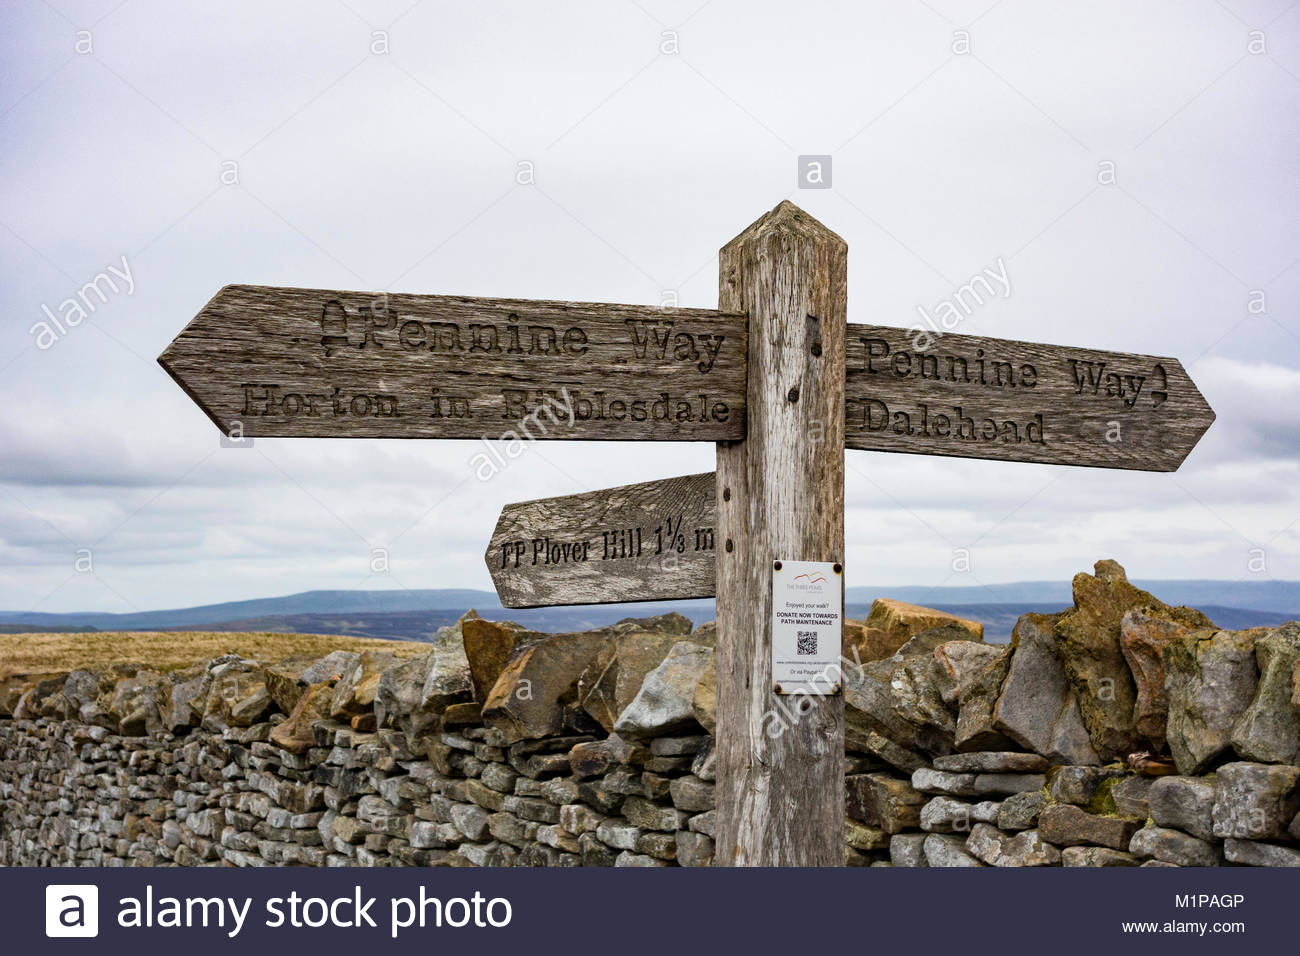 Pennine Way wooden signpost at the summit of Pen y Ghent, one of the 3 peaks in Yorkshire - Stock Image